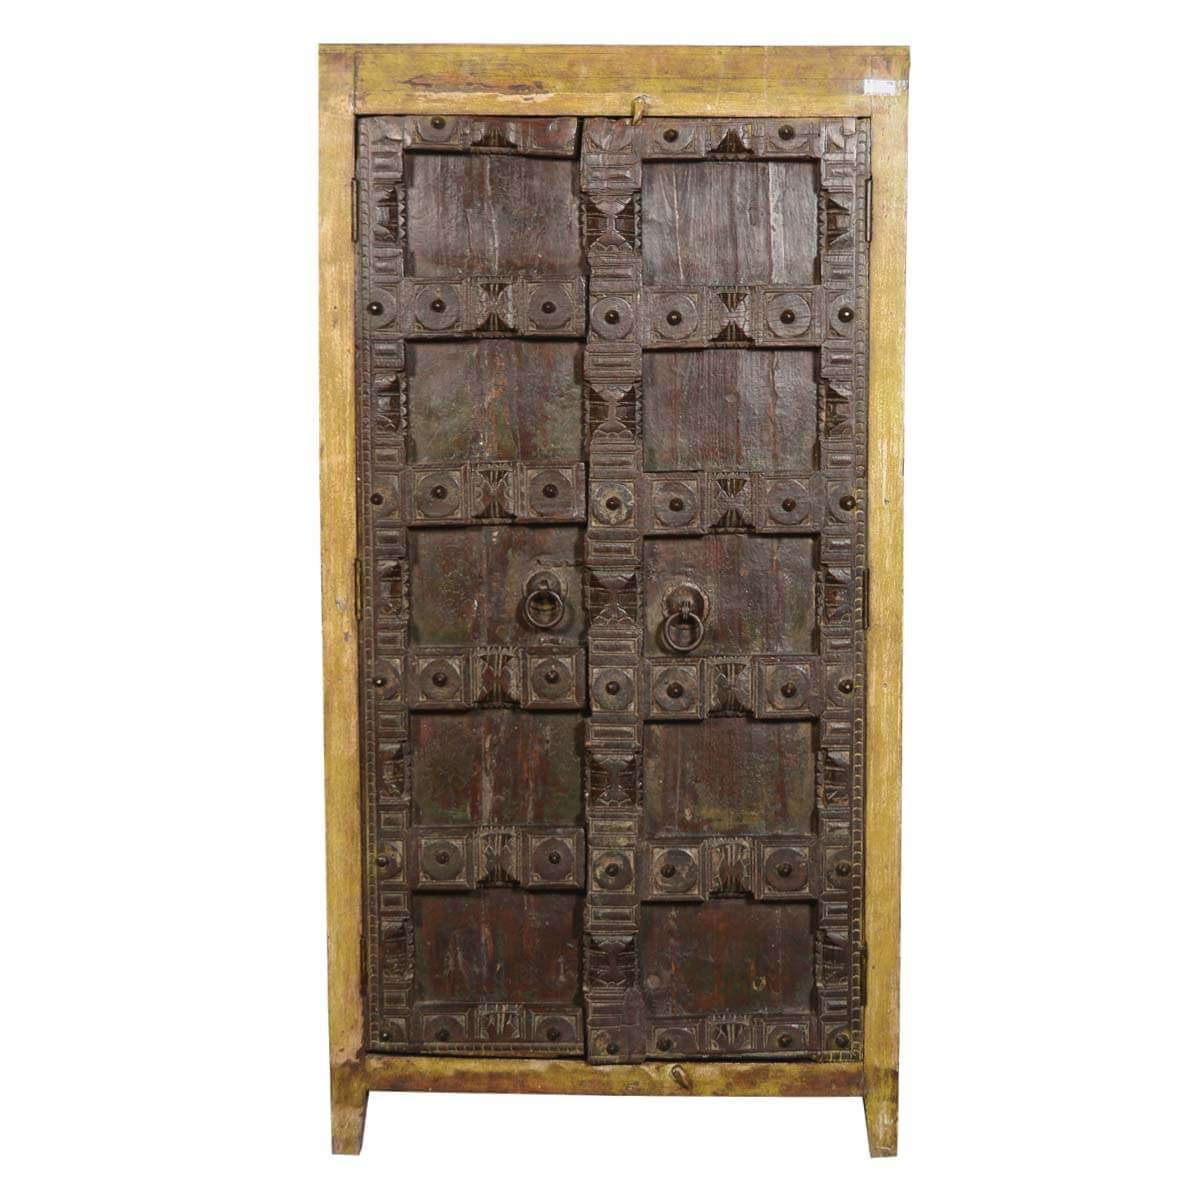 Antique door rustic armoire old reclaimed wood 5 storage for Old wood doors salvaged